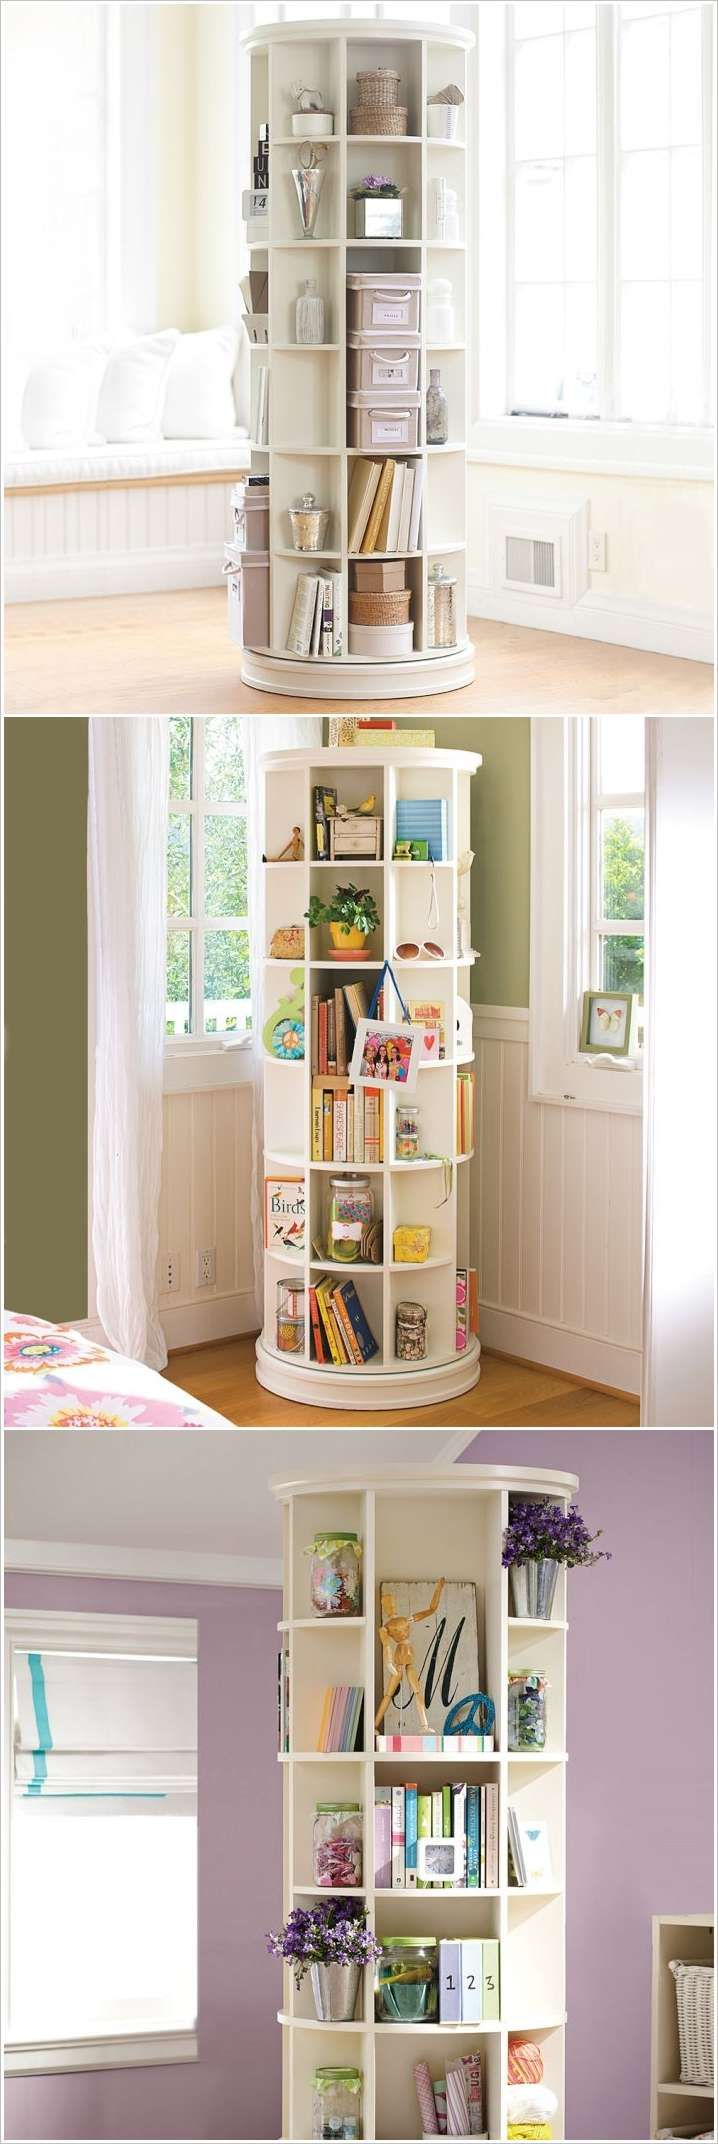 Small Bedroom Designs For Ladies A Revolving Bookcase Loaded With Storage Space House Stuff